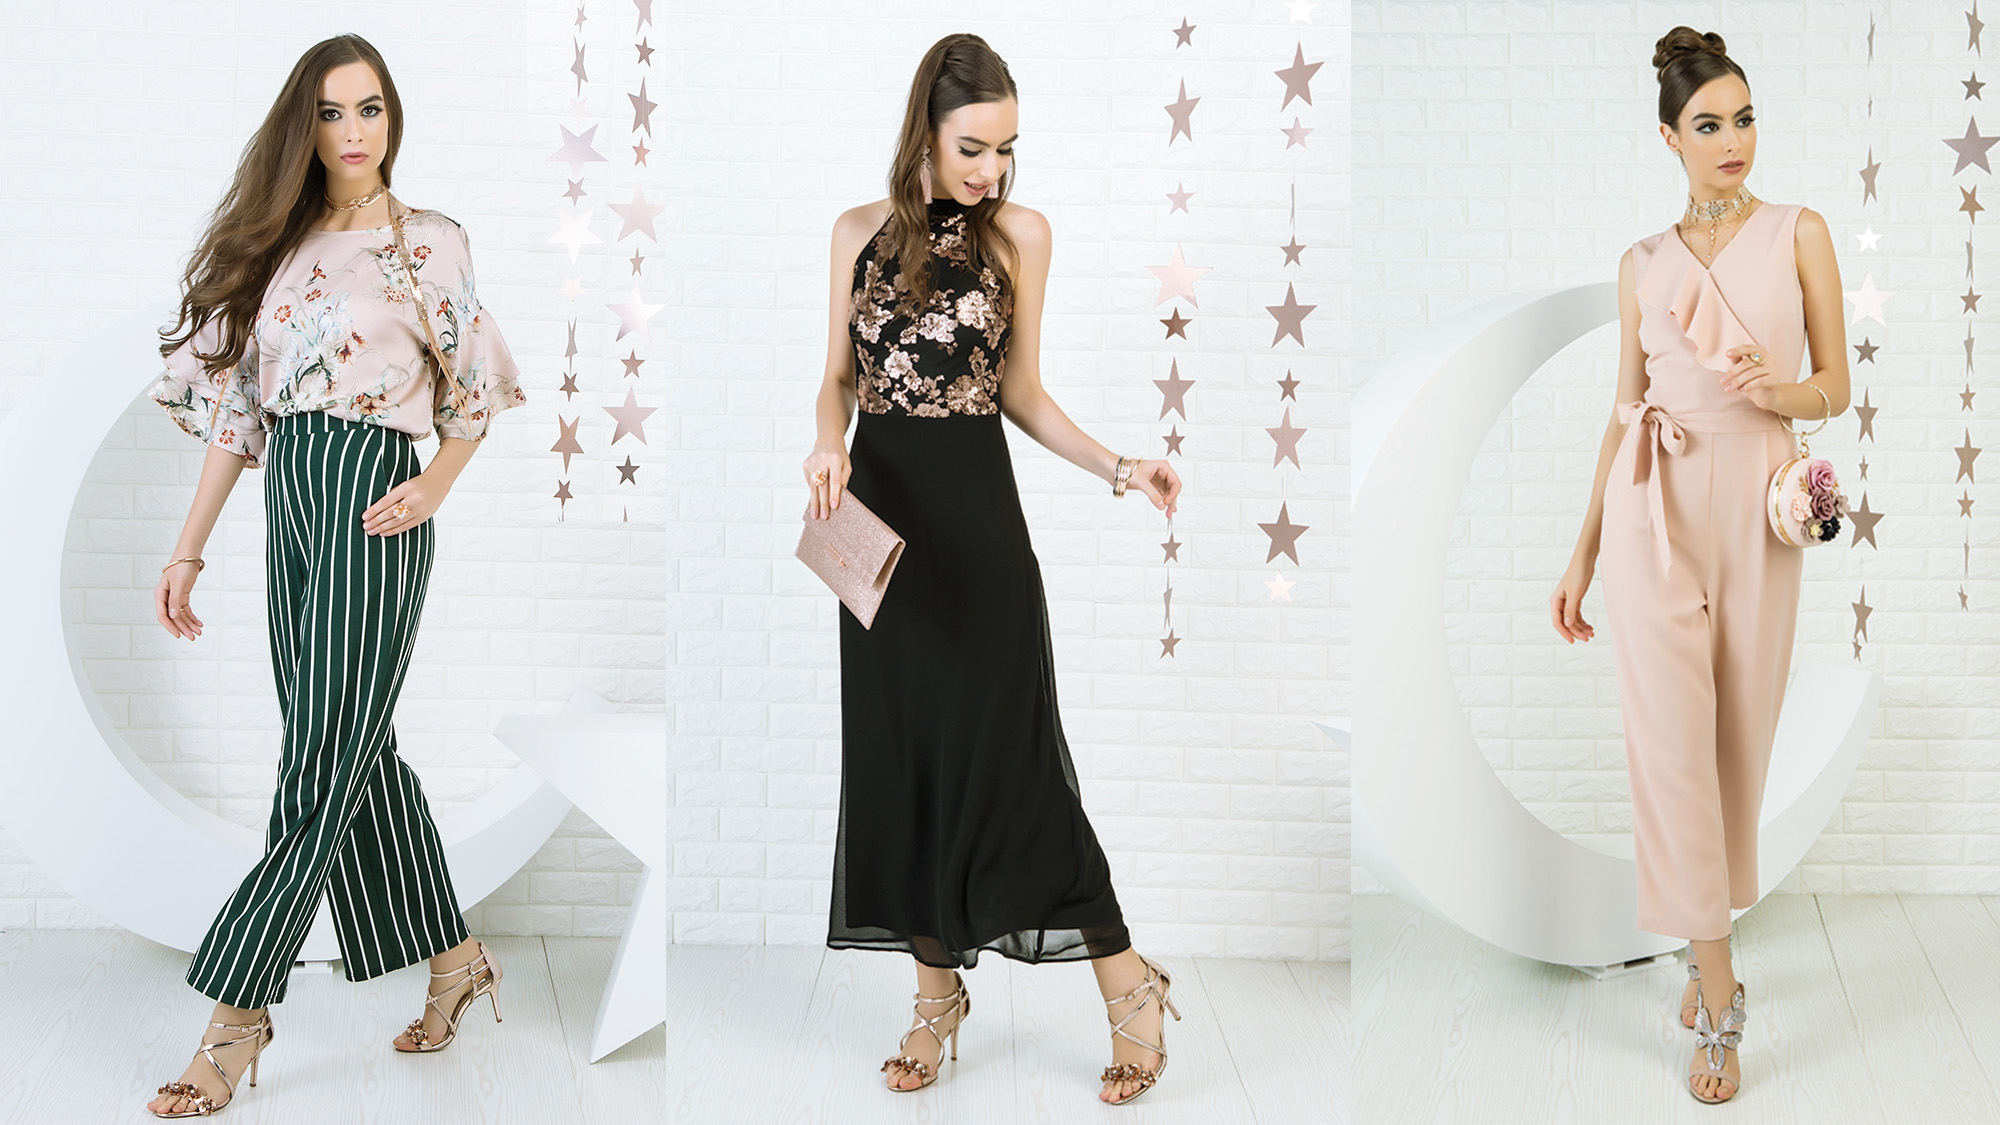 3 PERFECT OUTFITS FOR A STUNNING RAMADAN IFTAR LOOK